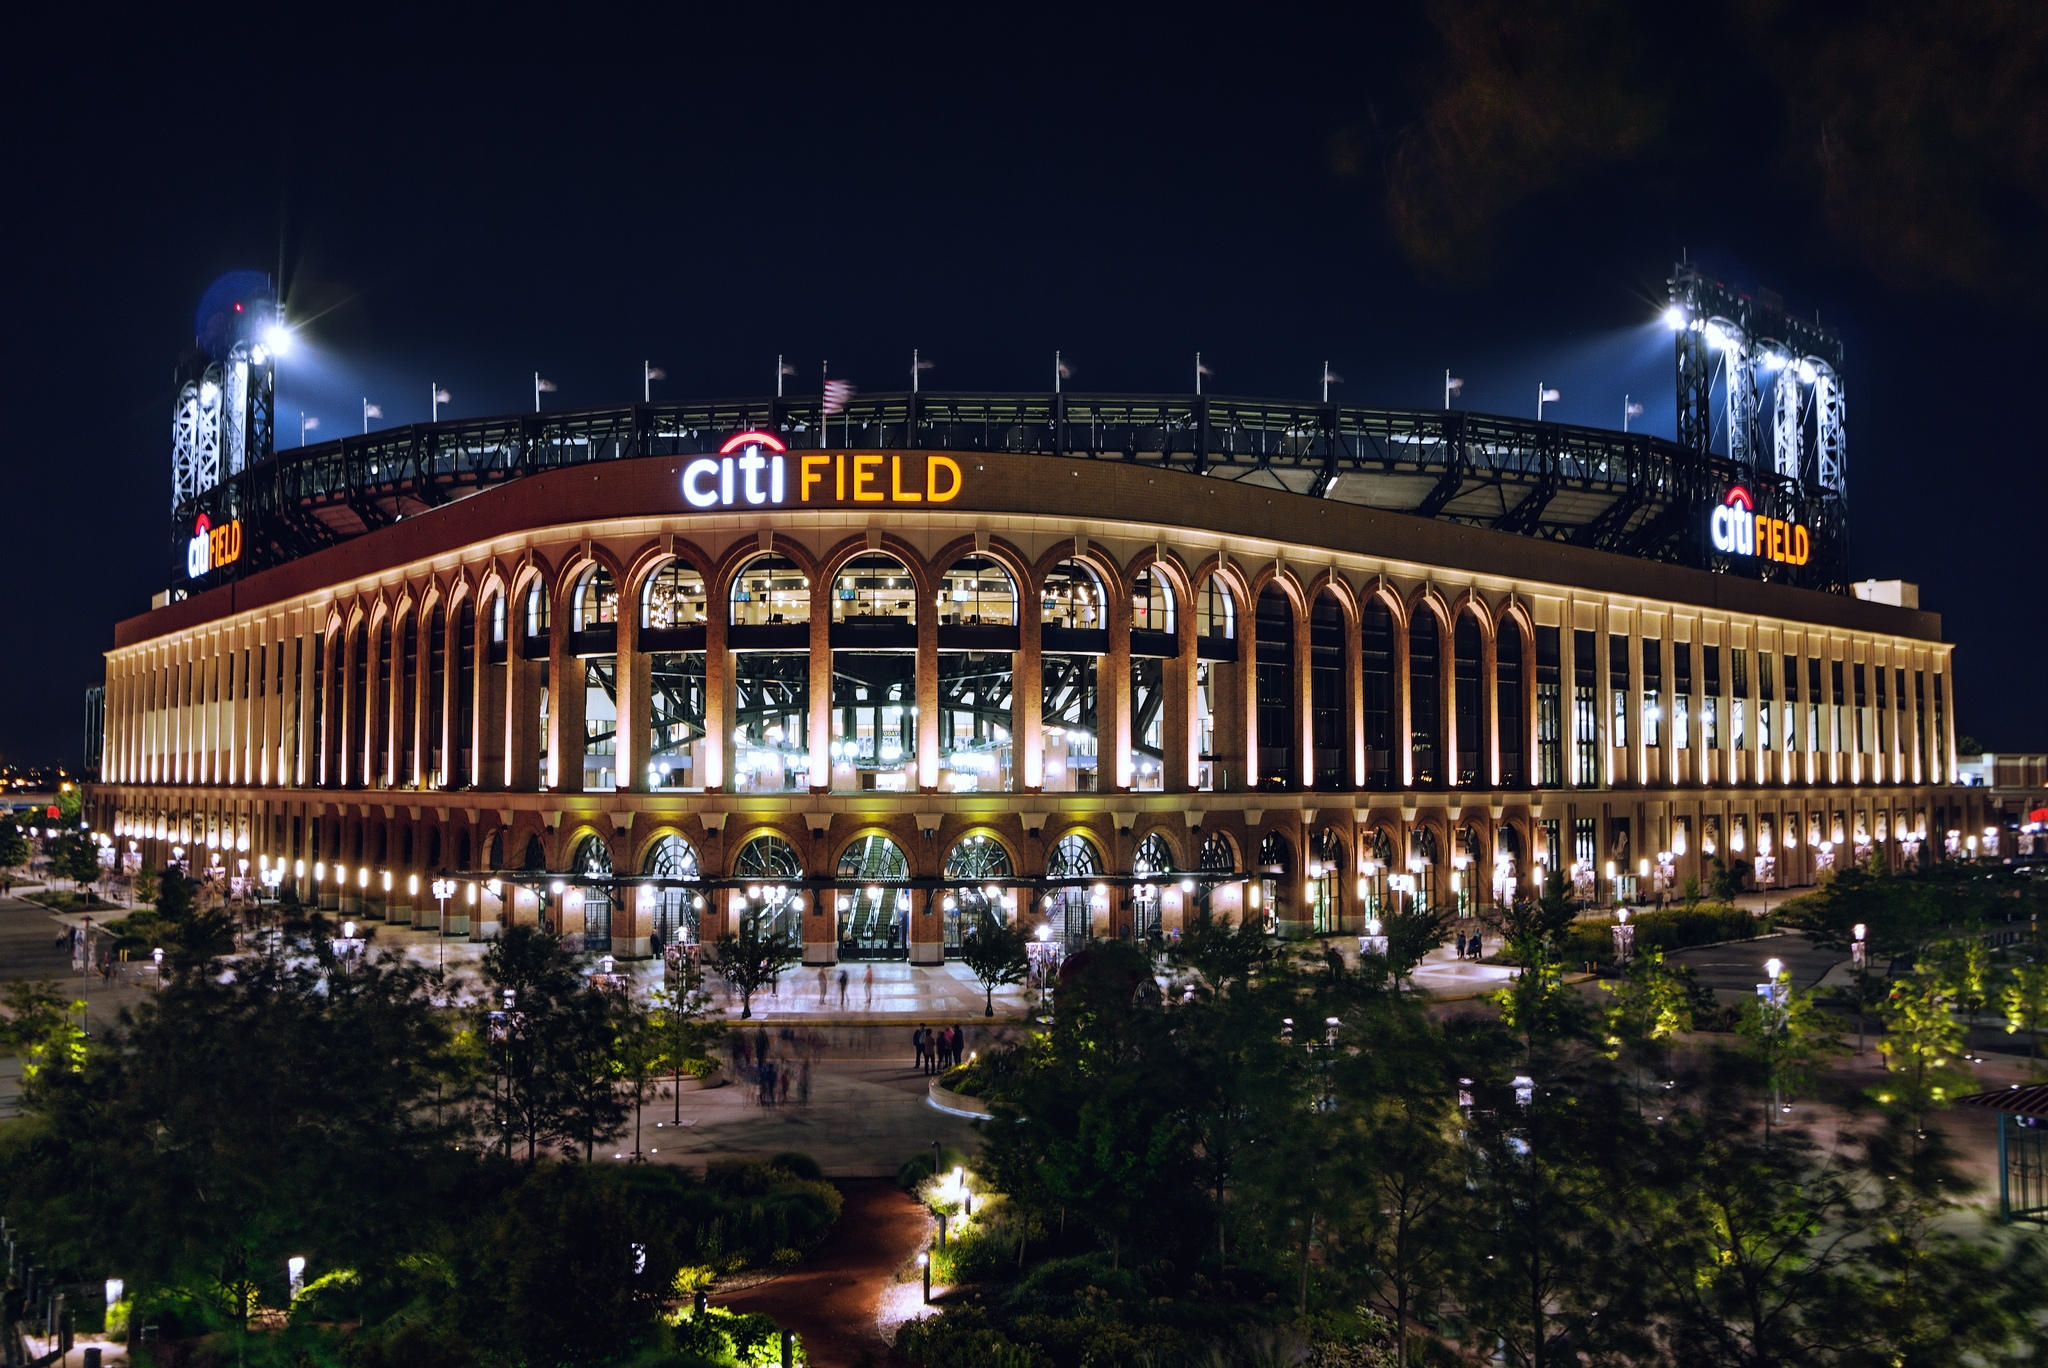 Citi Field is reachable via mass transit systems such as the New York City Subway 7 train at the Mets – Willets Pointstation, and the Long Island Rail Road station on the Port Washington Branch also called Mets – Willets Point. New York Water Taxi operates a free ferry to the stadium from Pier 11/Wall Street and the East 34th Street Ferry Landing before every game.